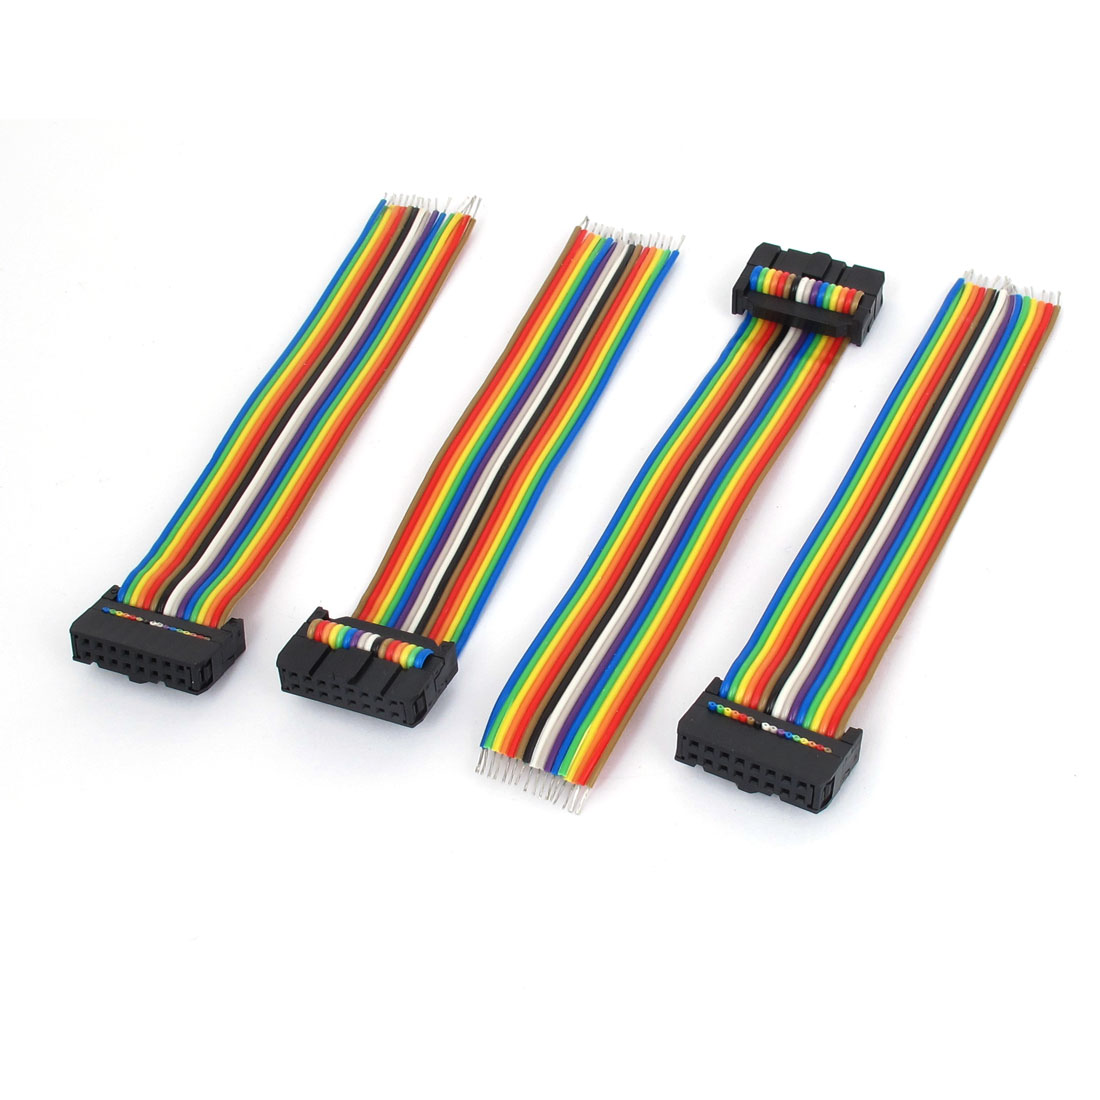 4pcs 16Pin 16 Wires Flat IDC Ribbon Cable Conductor Rainbow Color